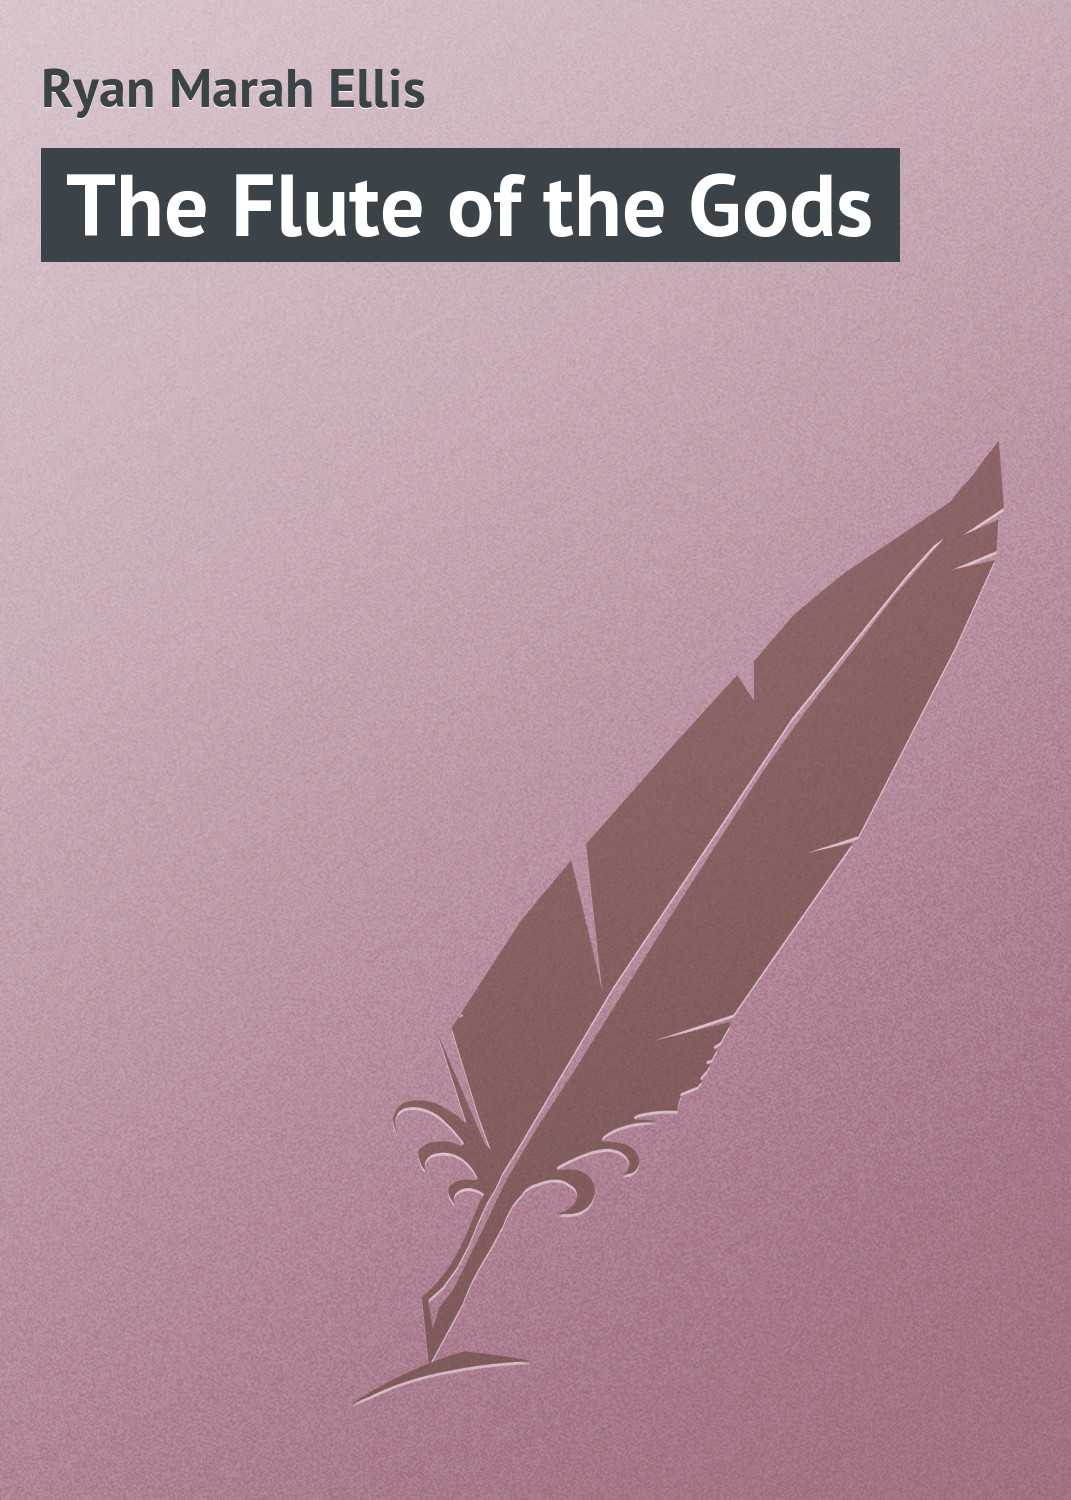 Ryan Marah Ellis The Flute of the Gods ryan marah ellis told in the hills a novel